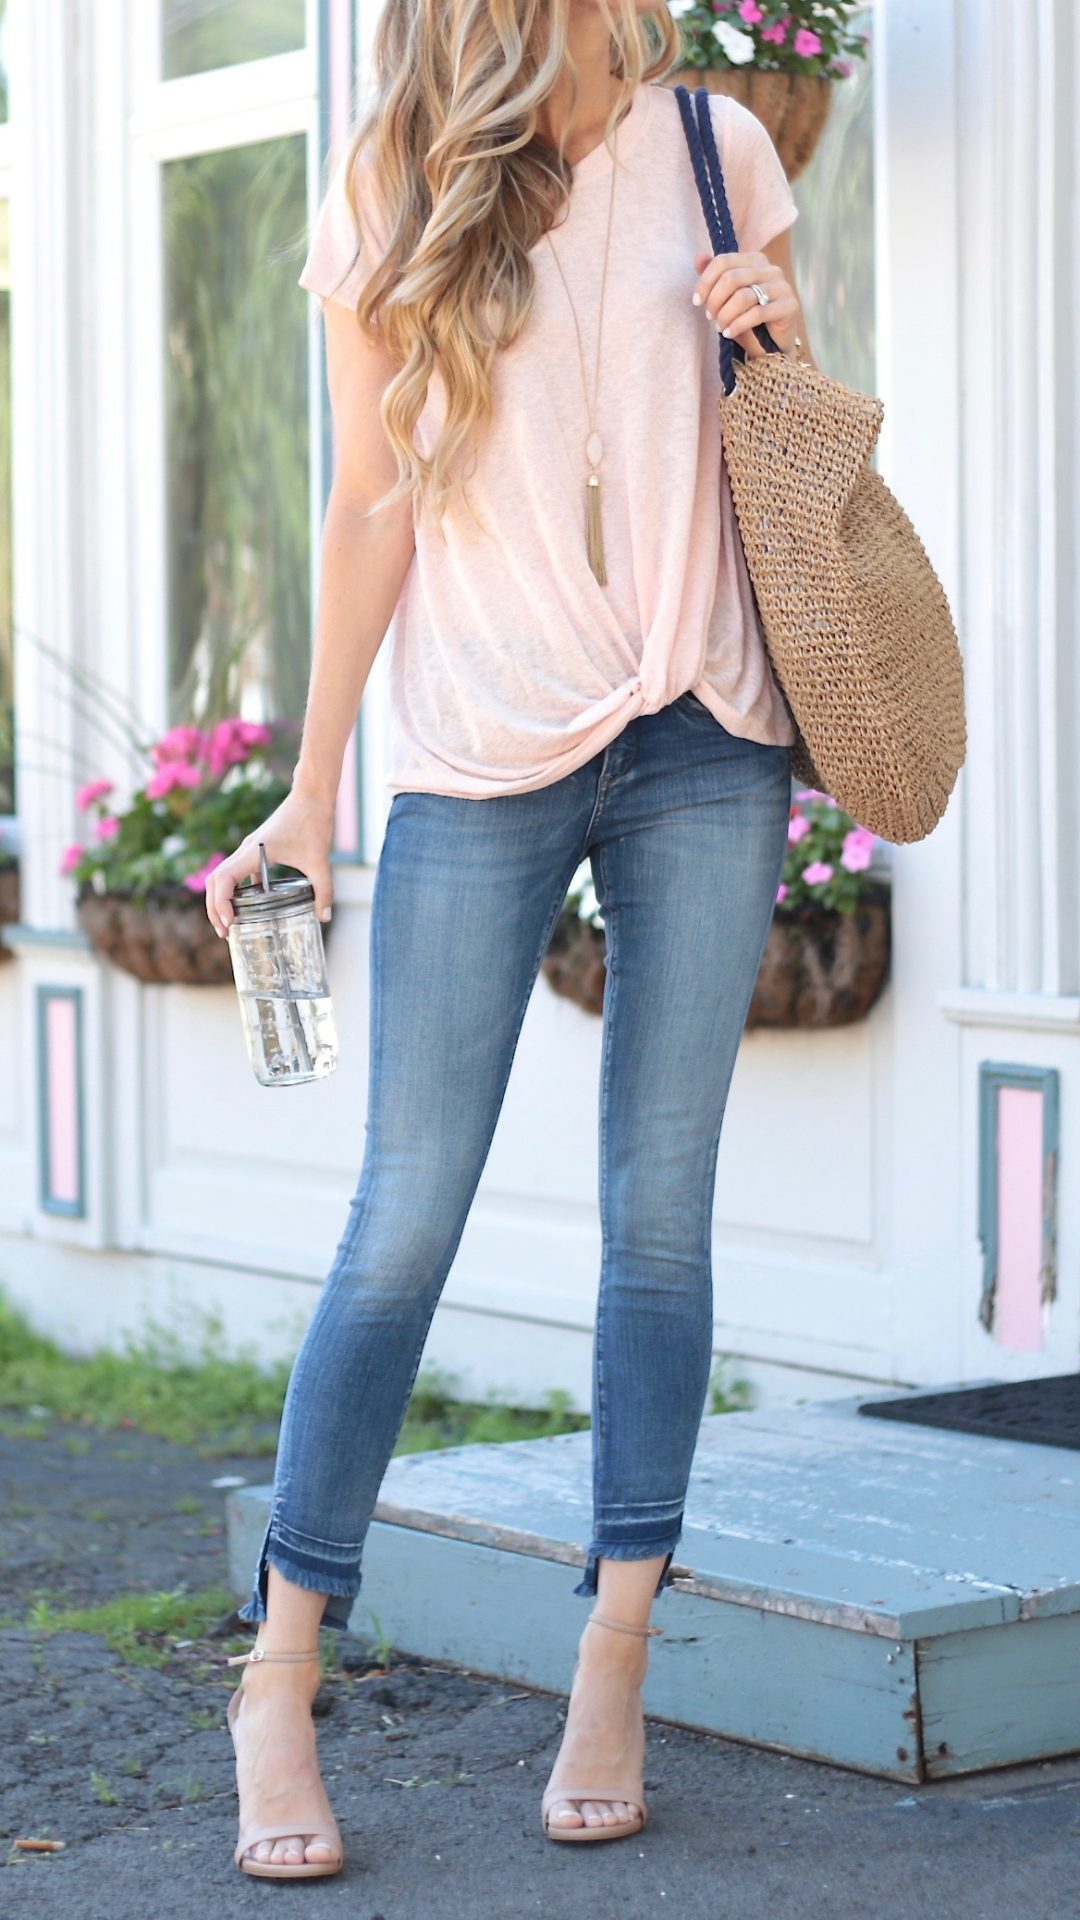 Pink Summer Outfits - An Instagram Round-Up Via Pinterestingplans-6698